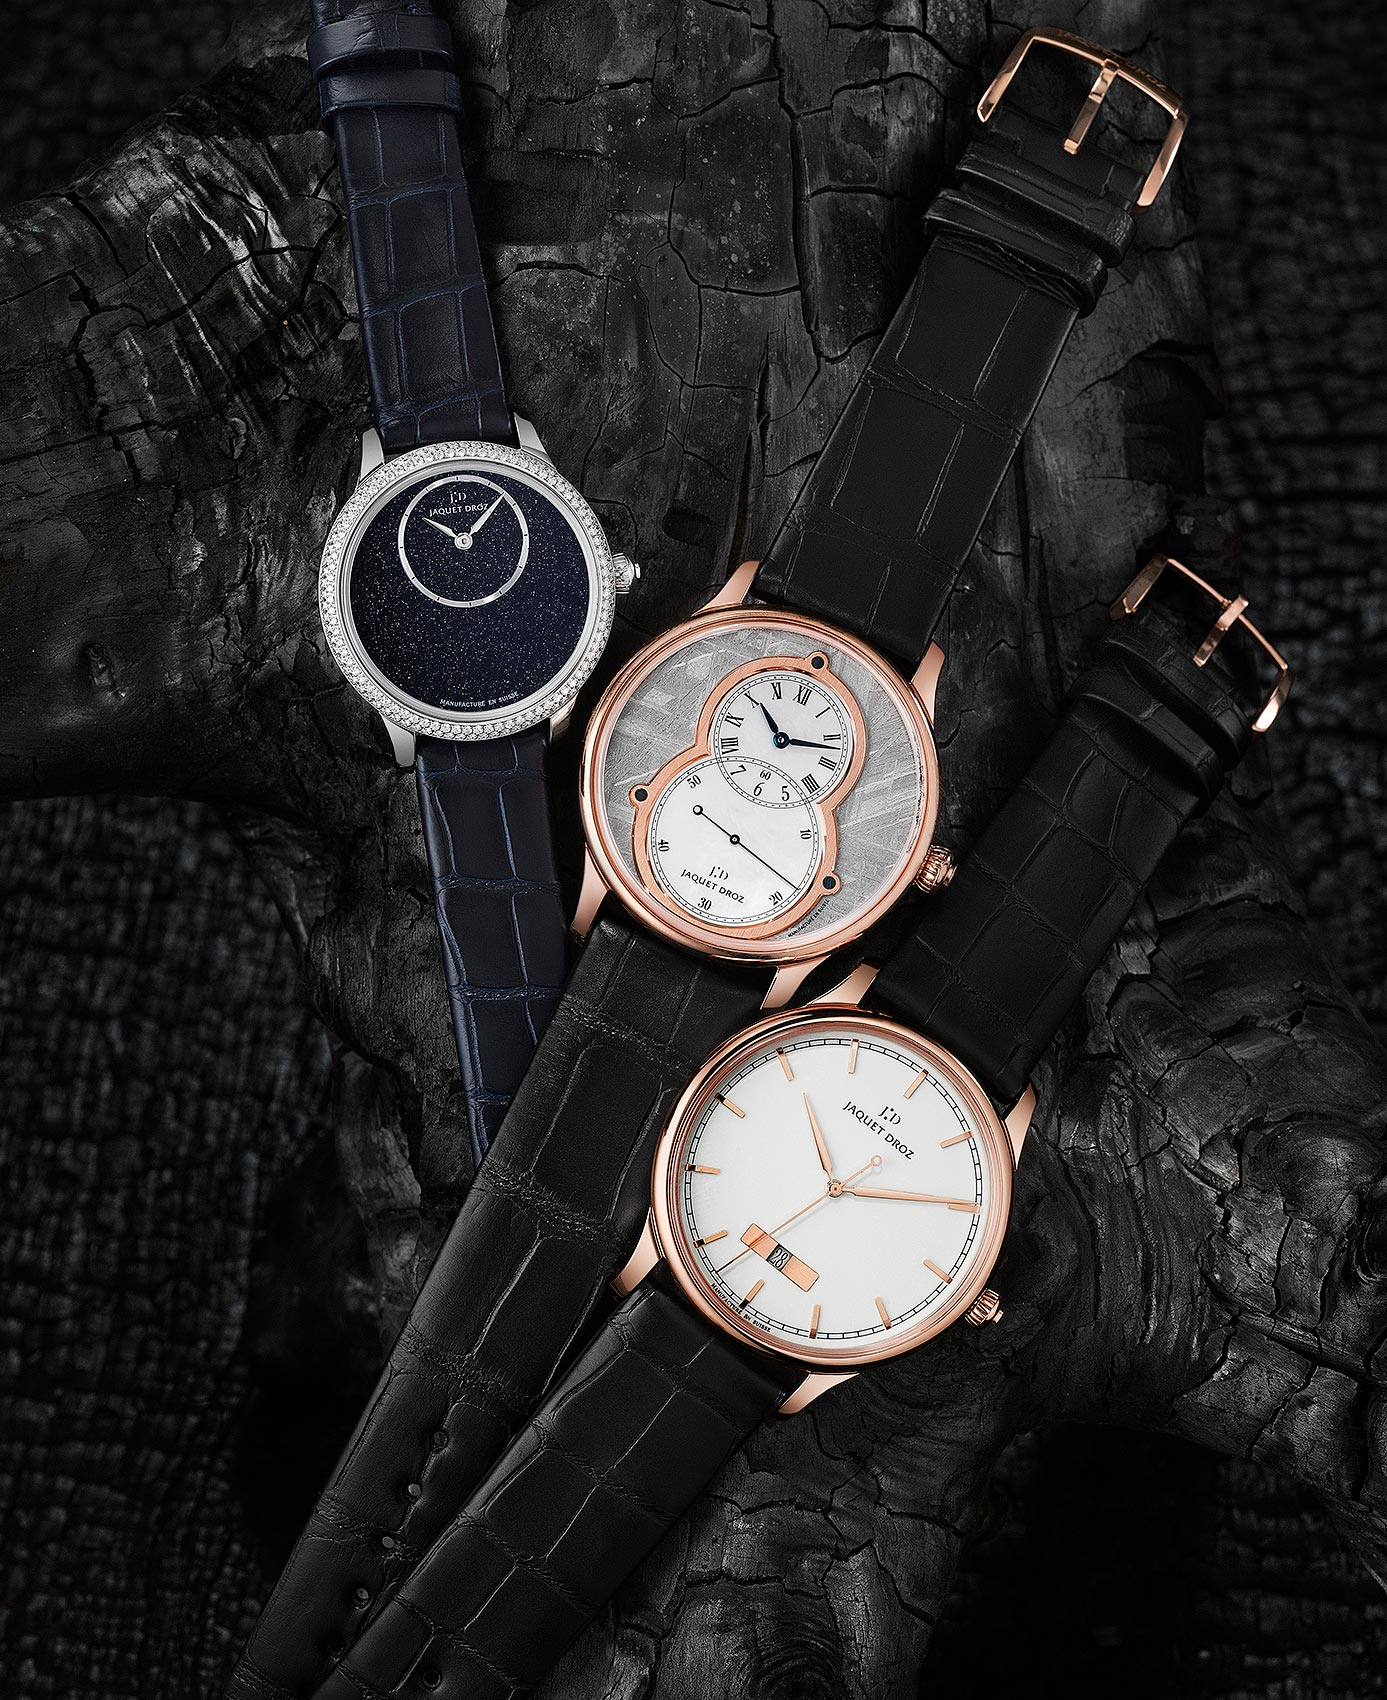 Jaquet-Droz-Timepieces